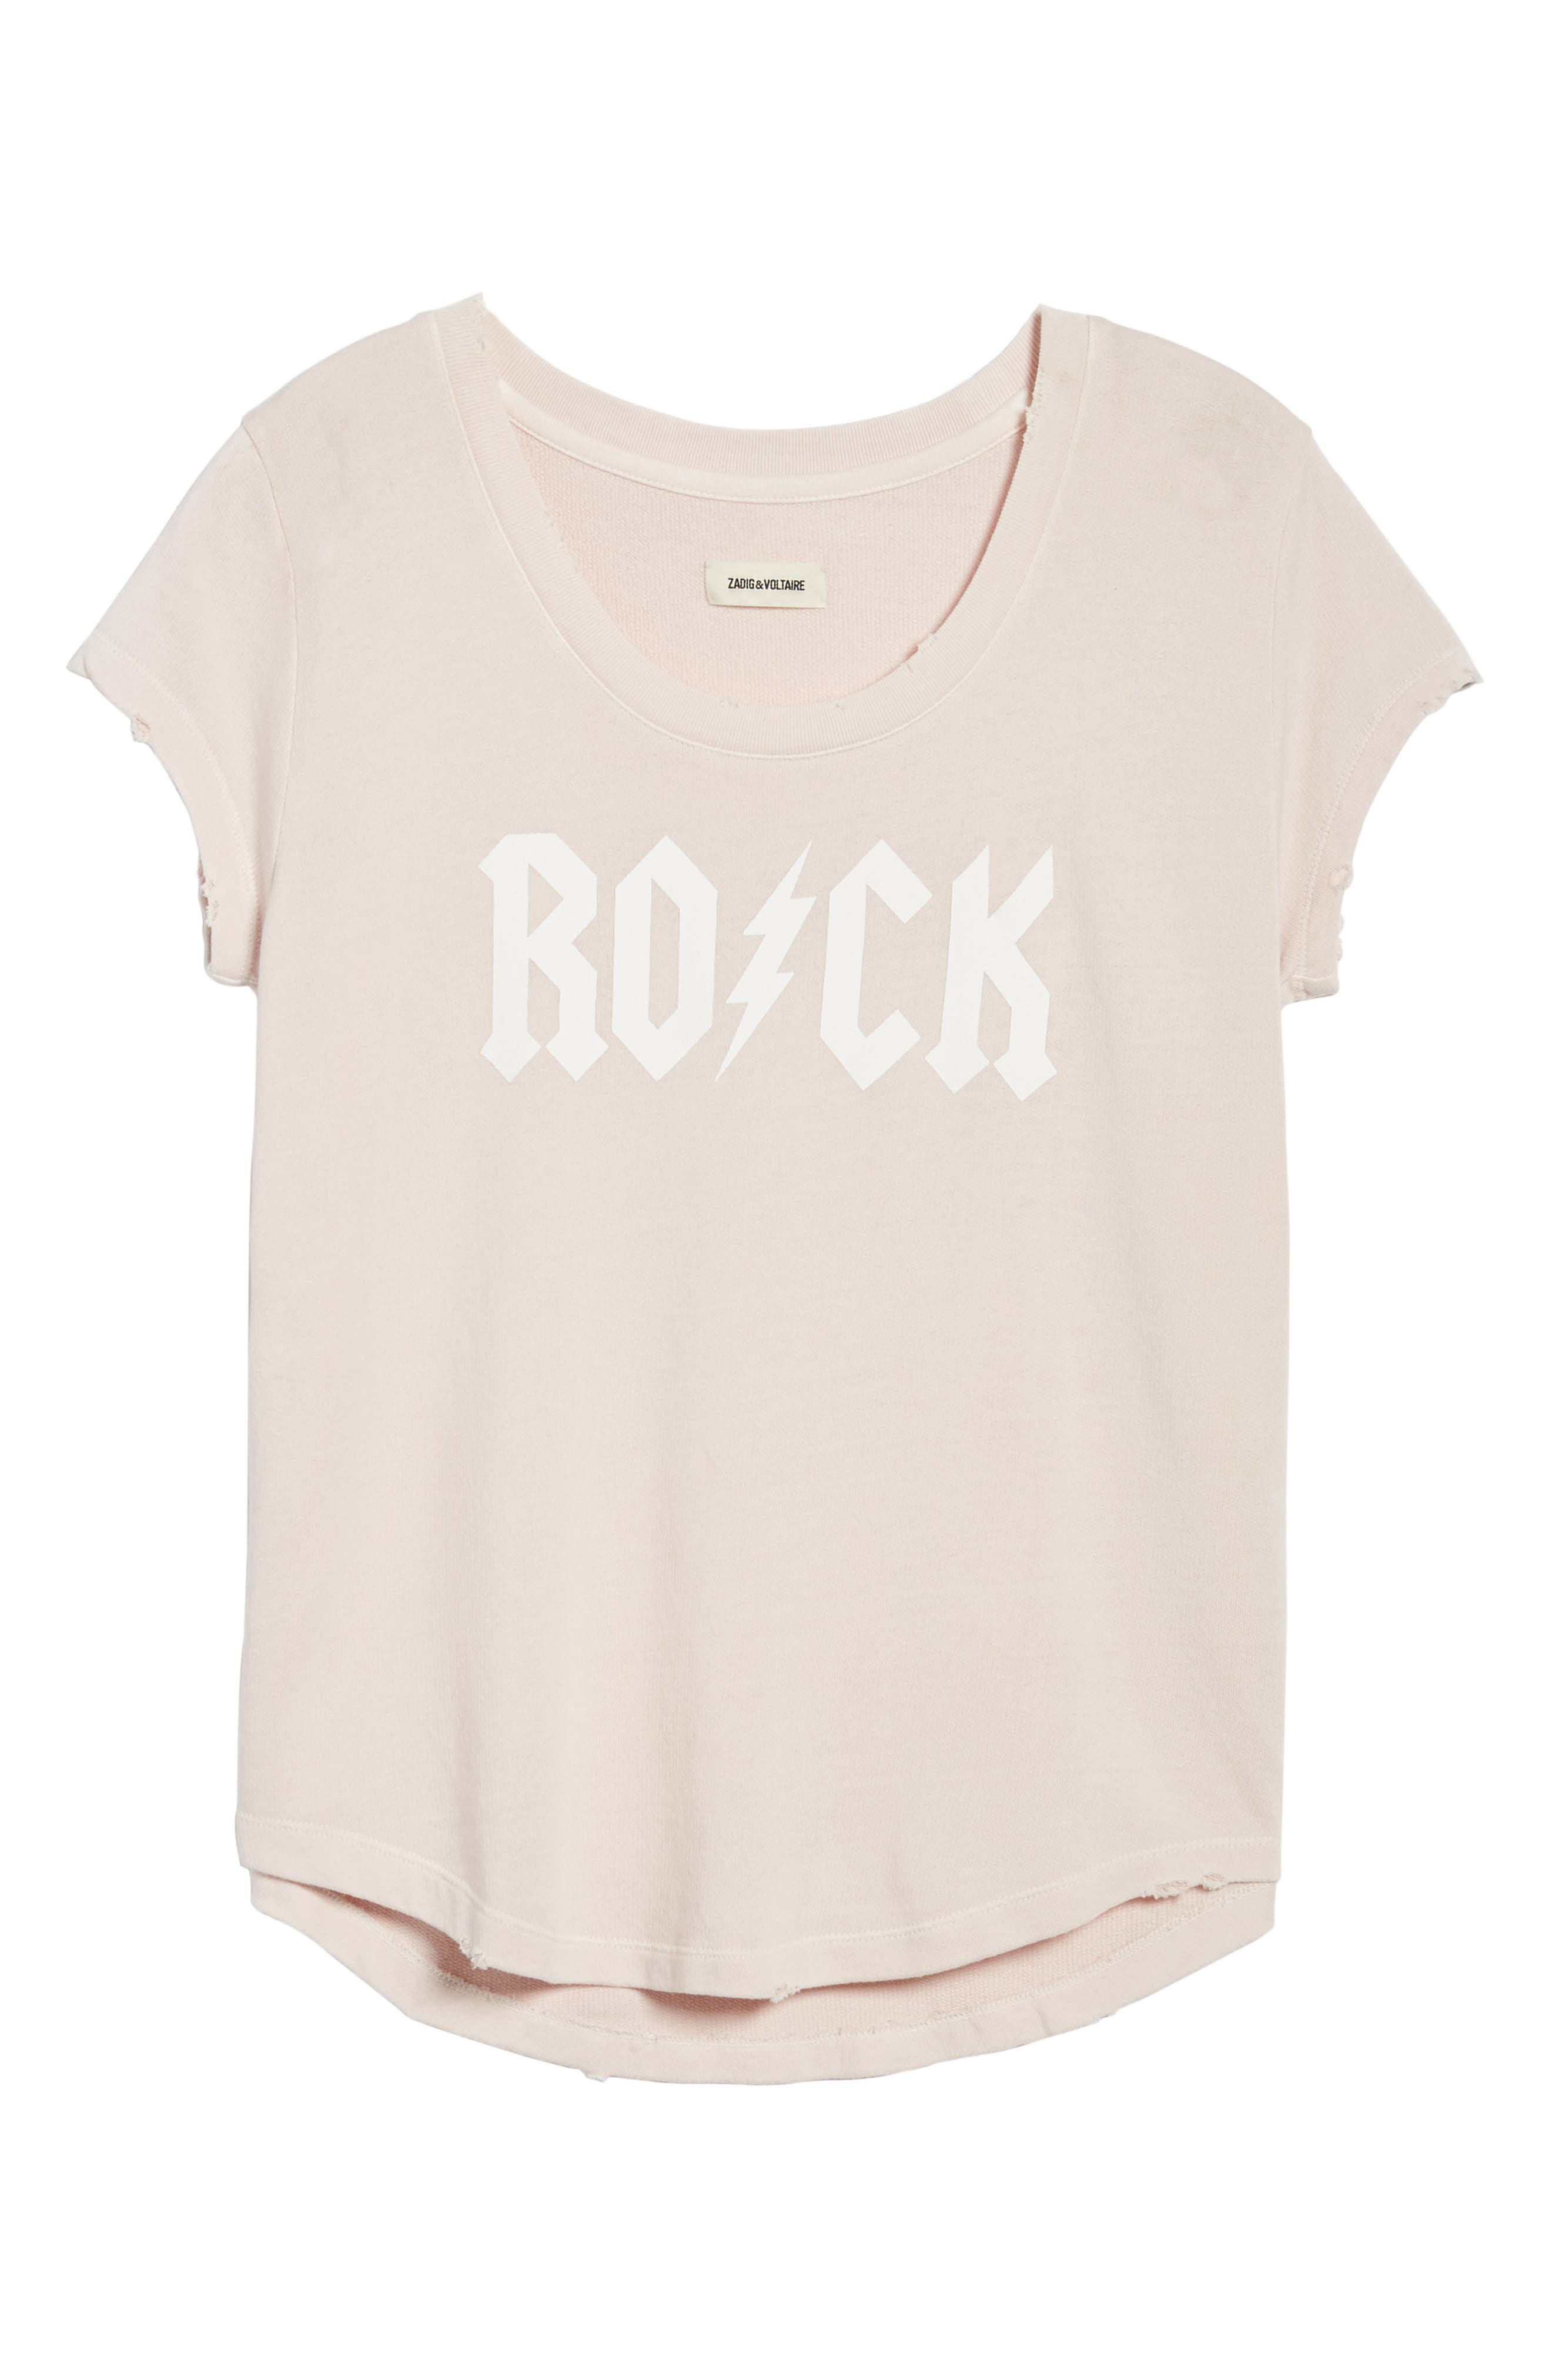 Rock & Roll Short Sleeve Sweatshirt,                             Alternate thumbnail 7, color,                             BEBE